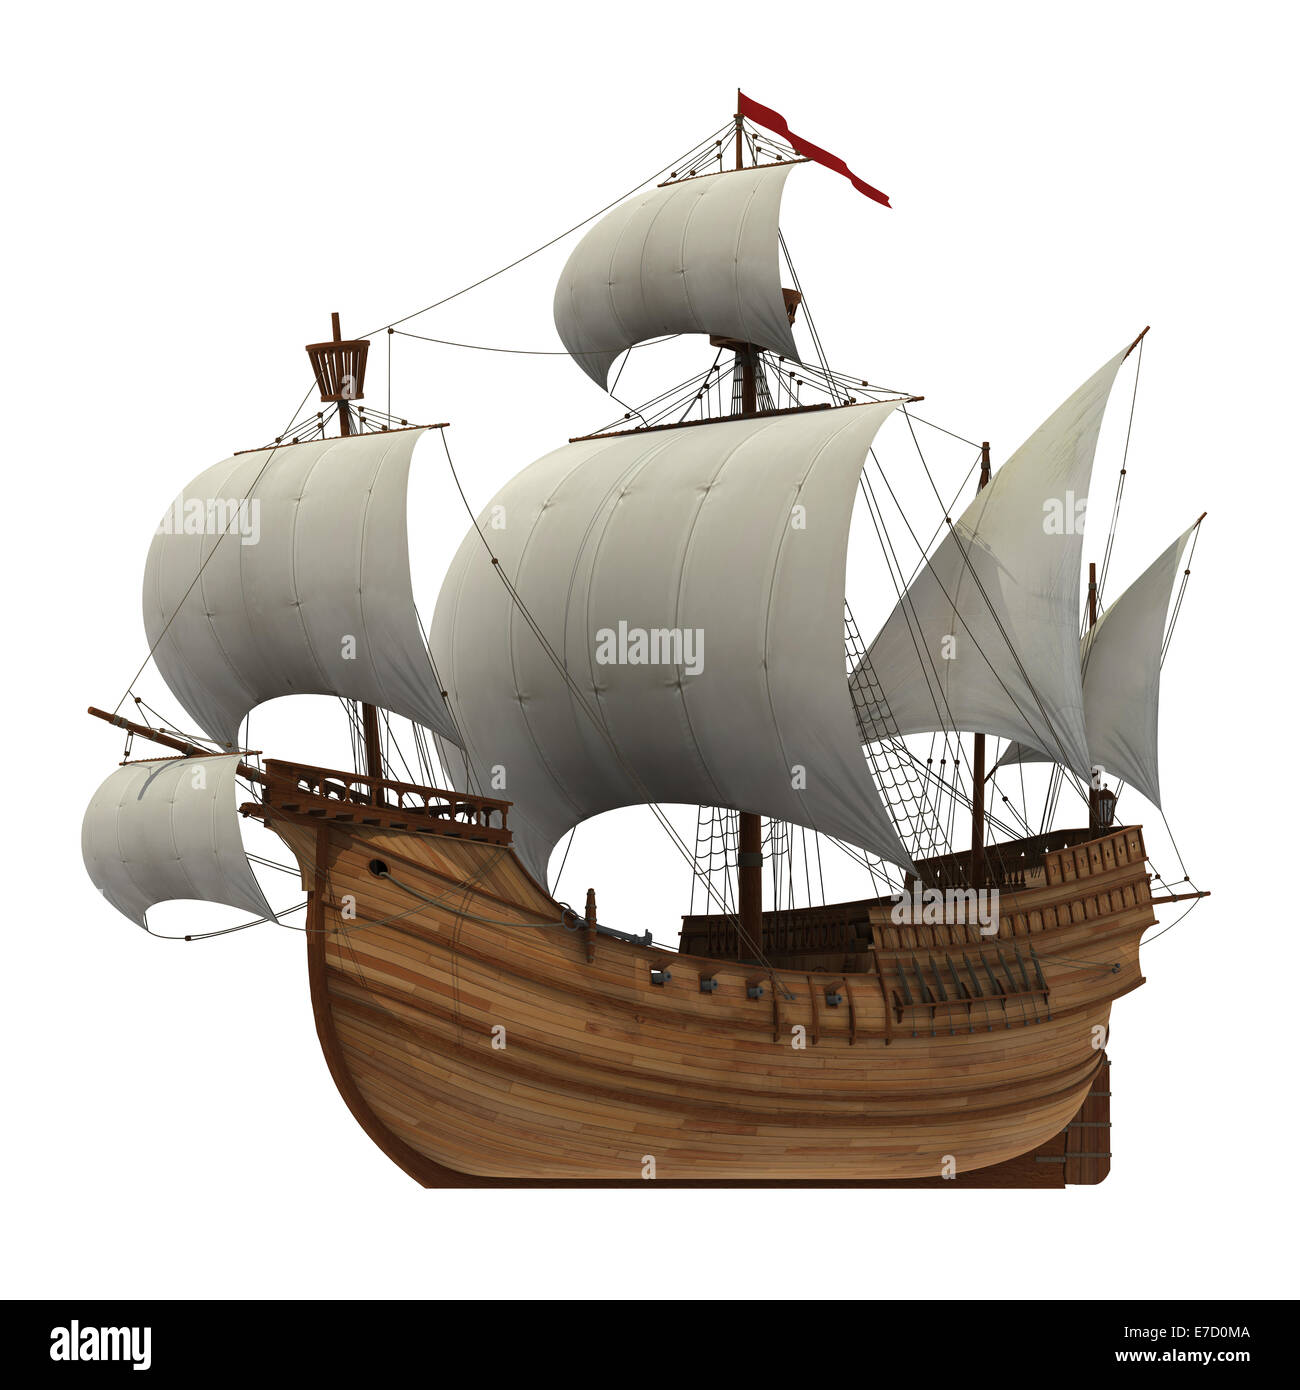 Caravel With White Sails. - Stock Image